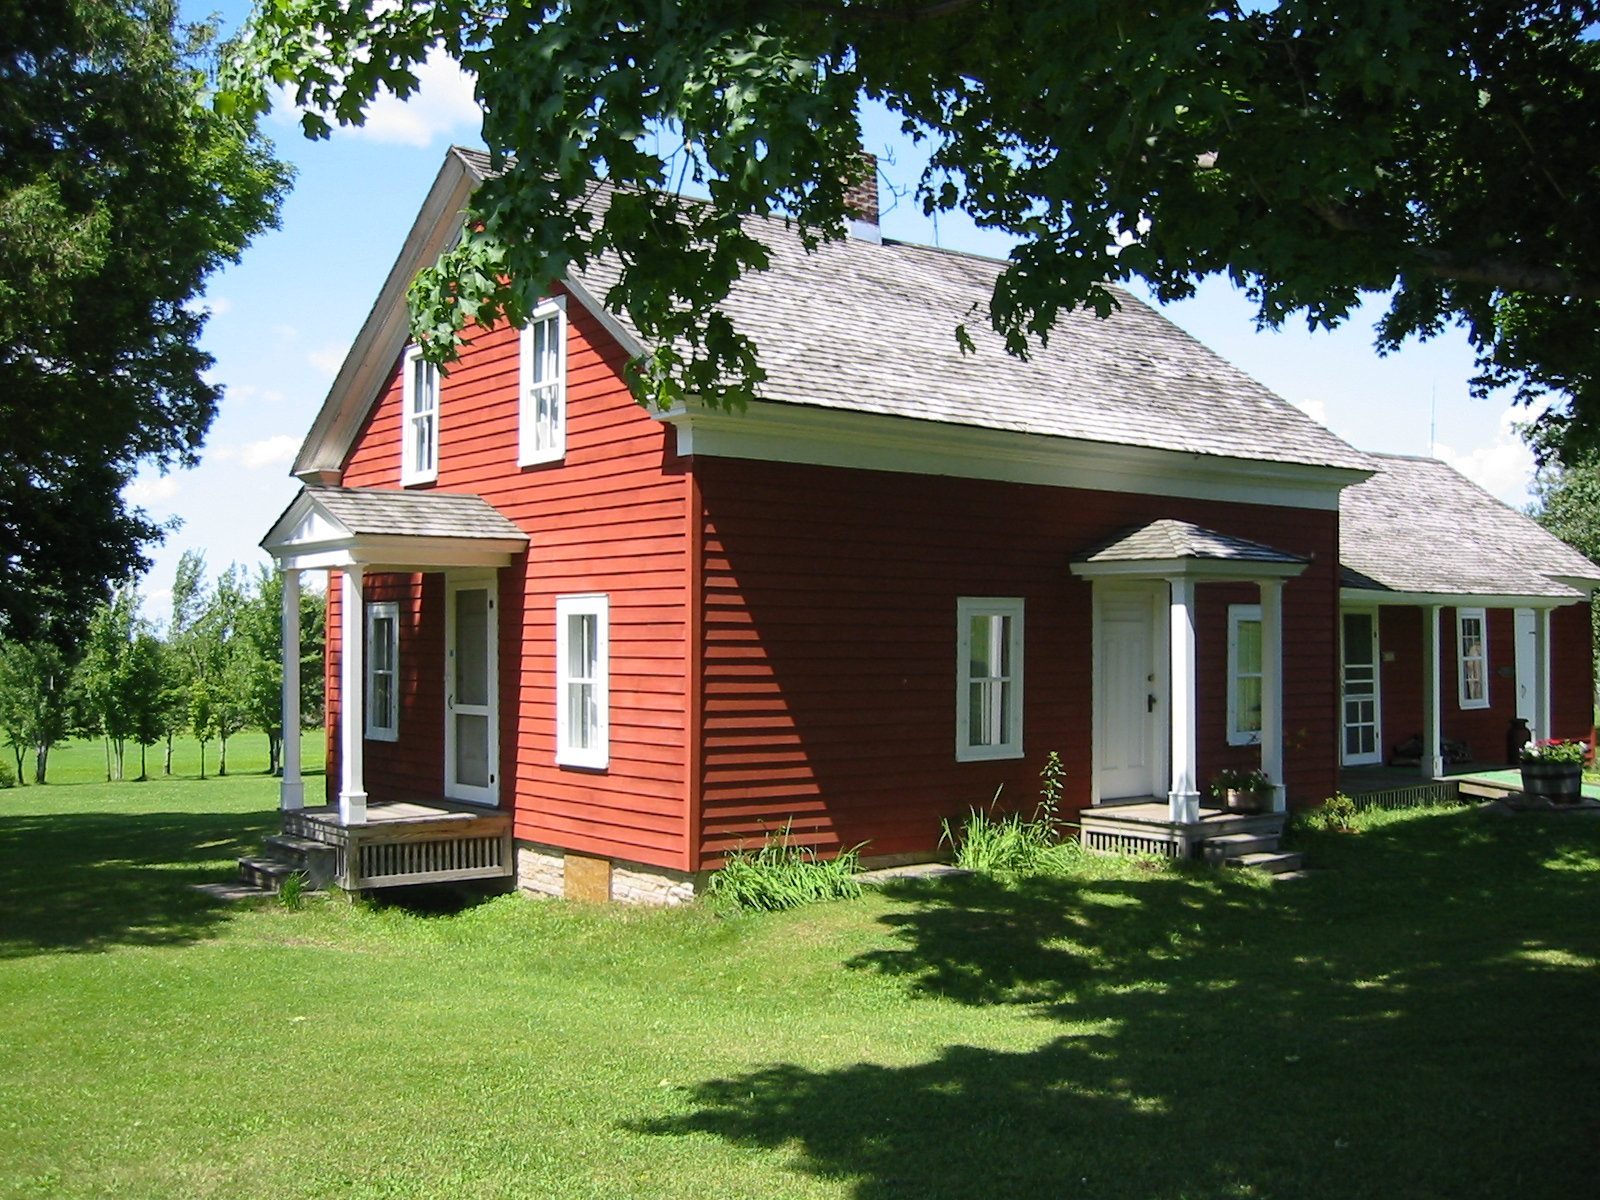 The Wilder Farmhouse is the only home mentioned in the Little House books that is still standing on its original foundation.